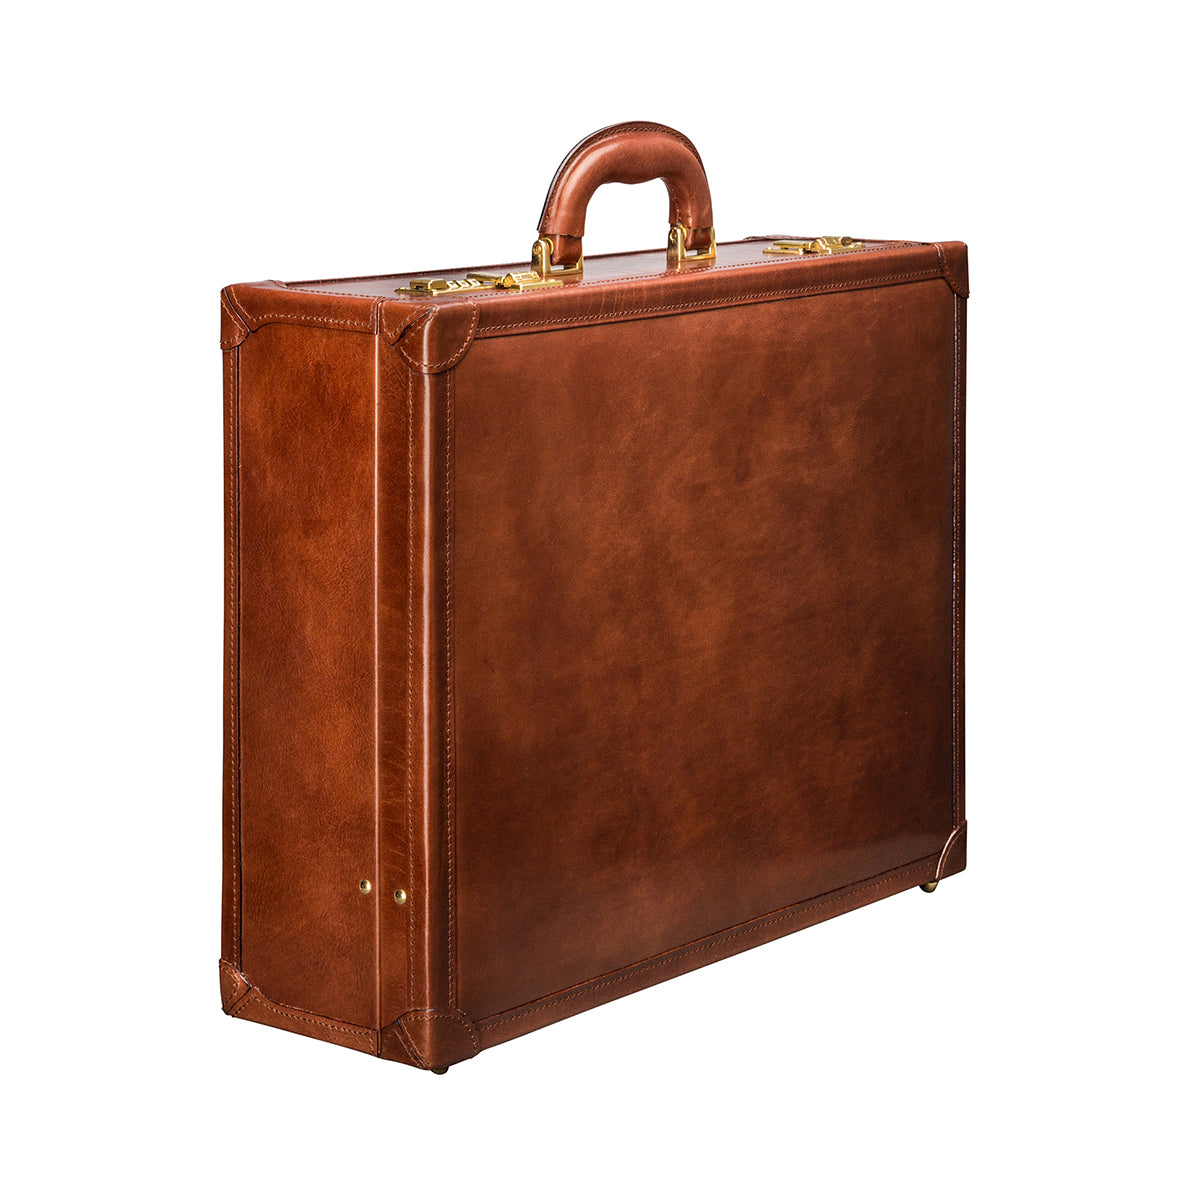 Image 2 of the 'Buroni' Chestnut Veg-Tanned Leather Business Attaché  Case